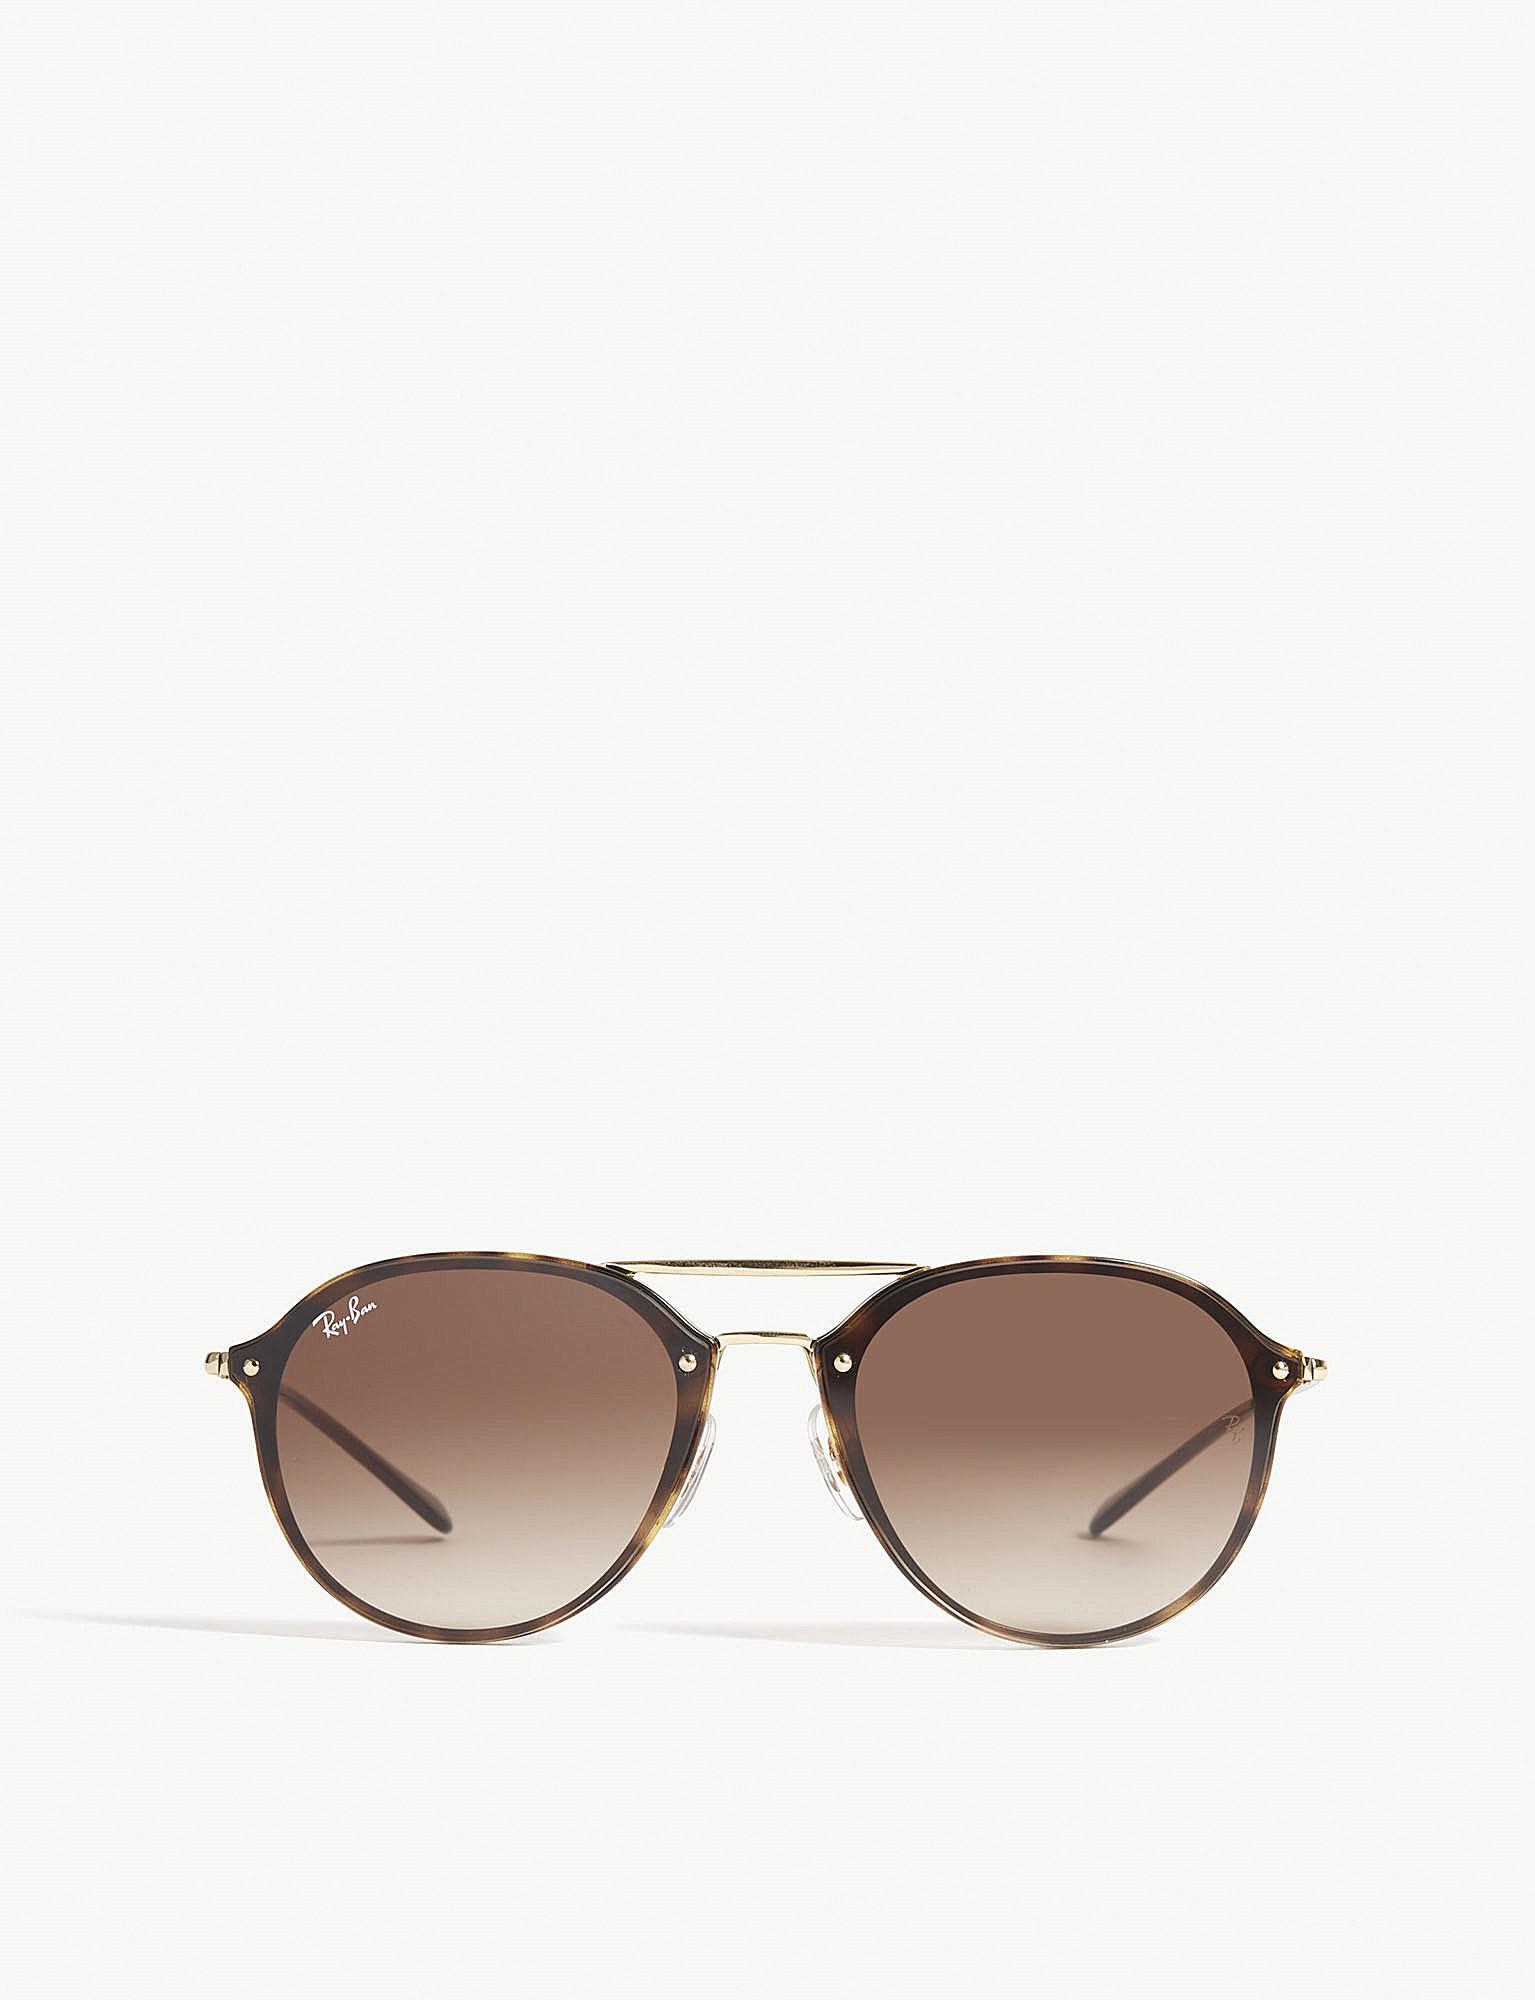 7868c1f1db Ray-Ban Rb4292 Blaze Square-frame Sunglasses in Brown - Lyst